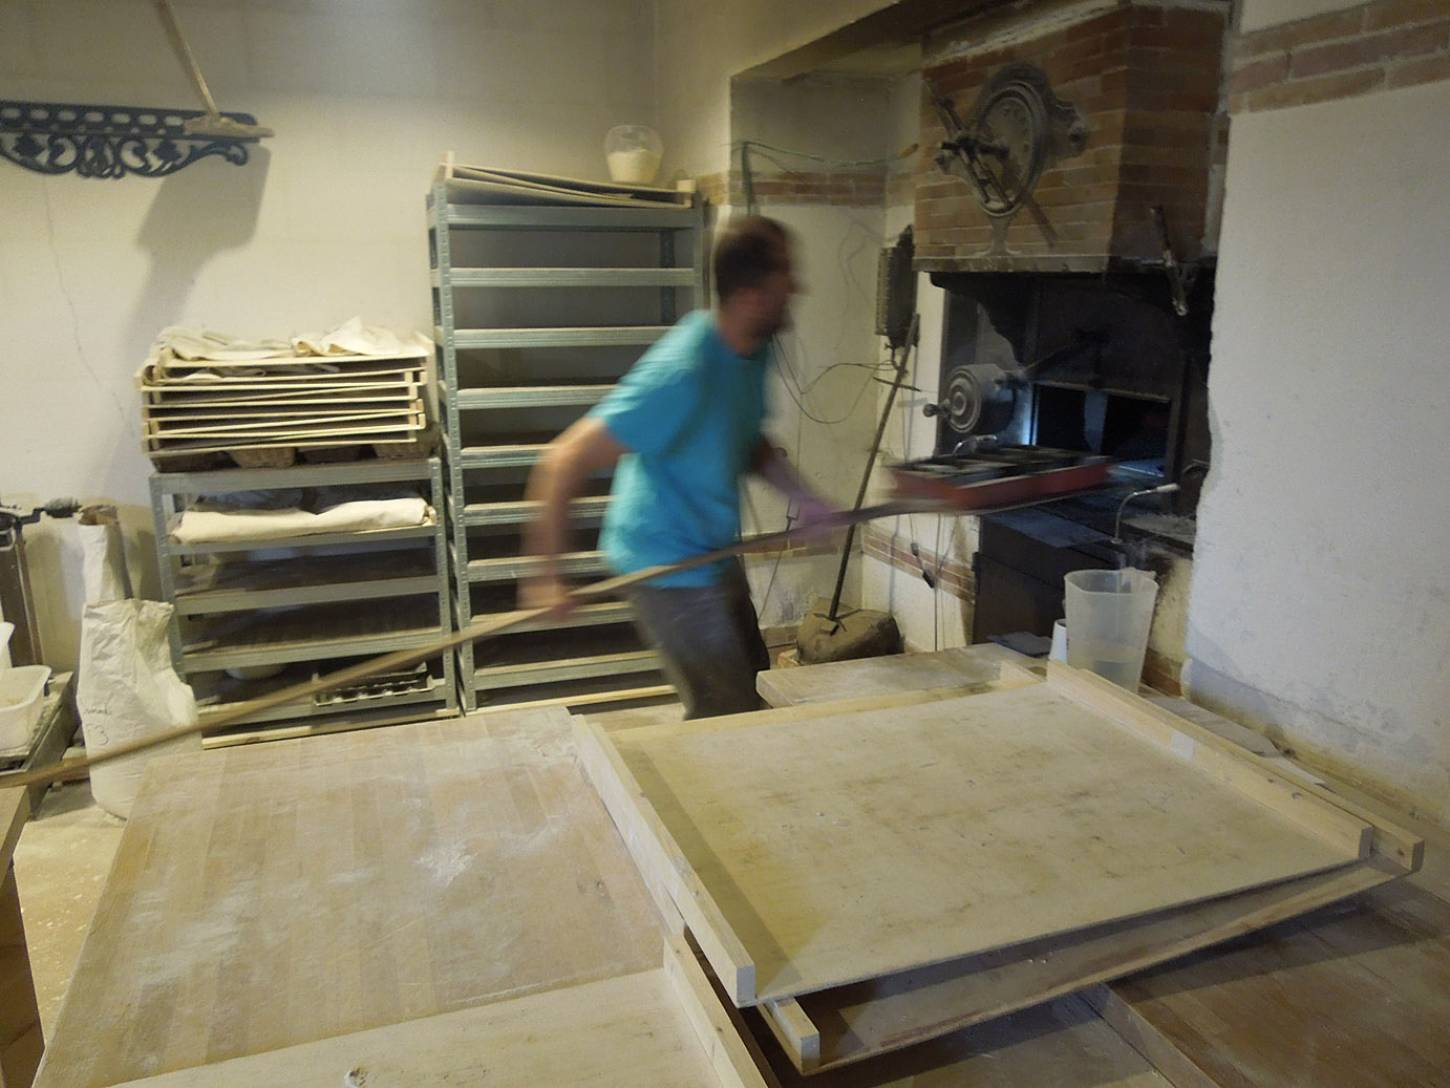 visit to the boulangers paysan of <a href='https://www.facebook.com/Ferme.Campagnolle' target=_blank>Ferme Campognole</a> - loading oven - 8:40am&nbsp;29<sup>th</sup>&nbsp;May.&nbsp;'15